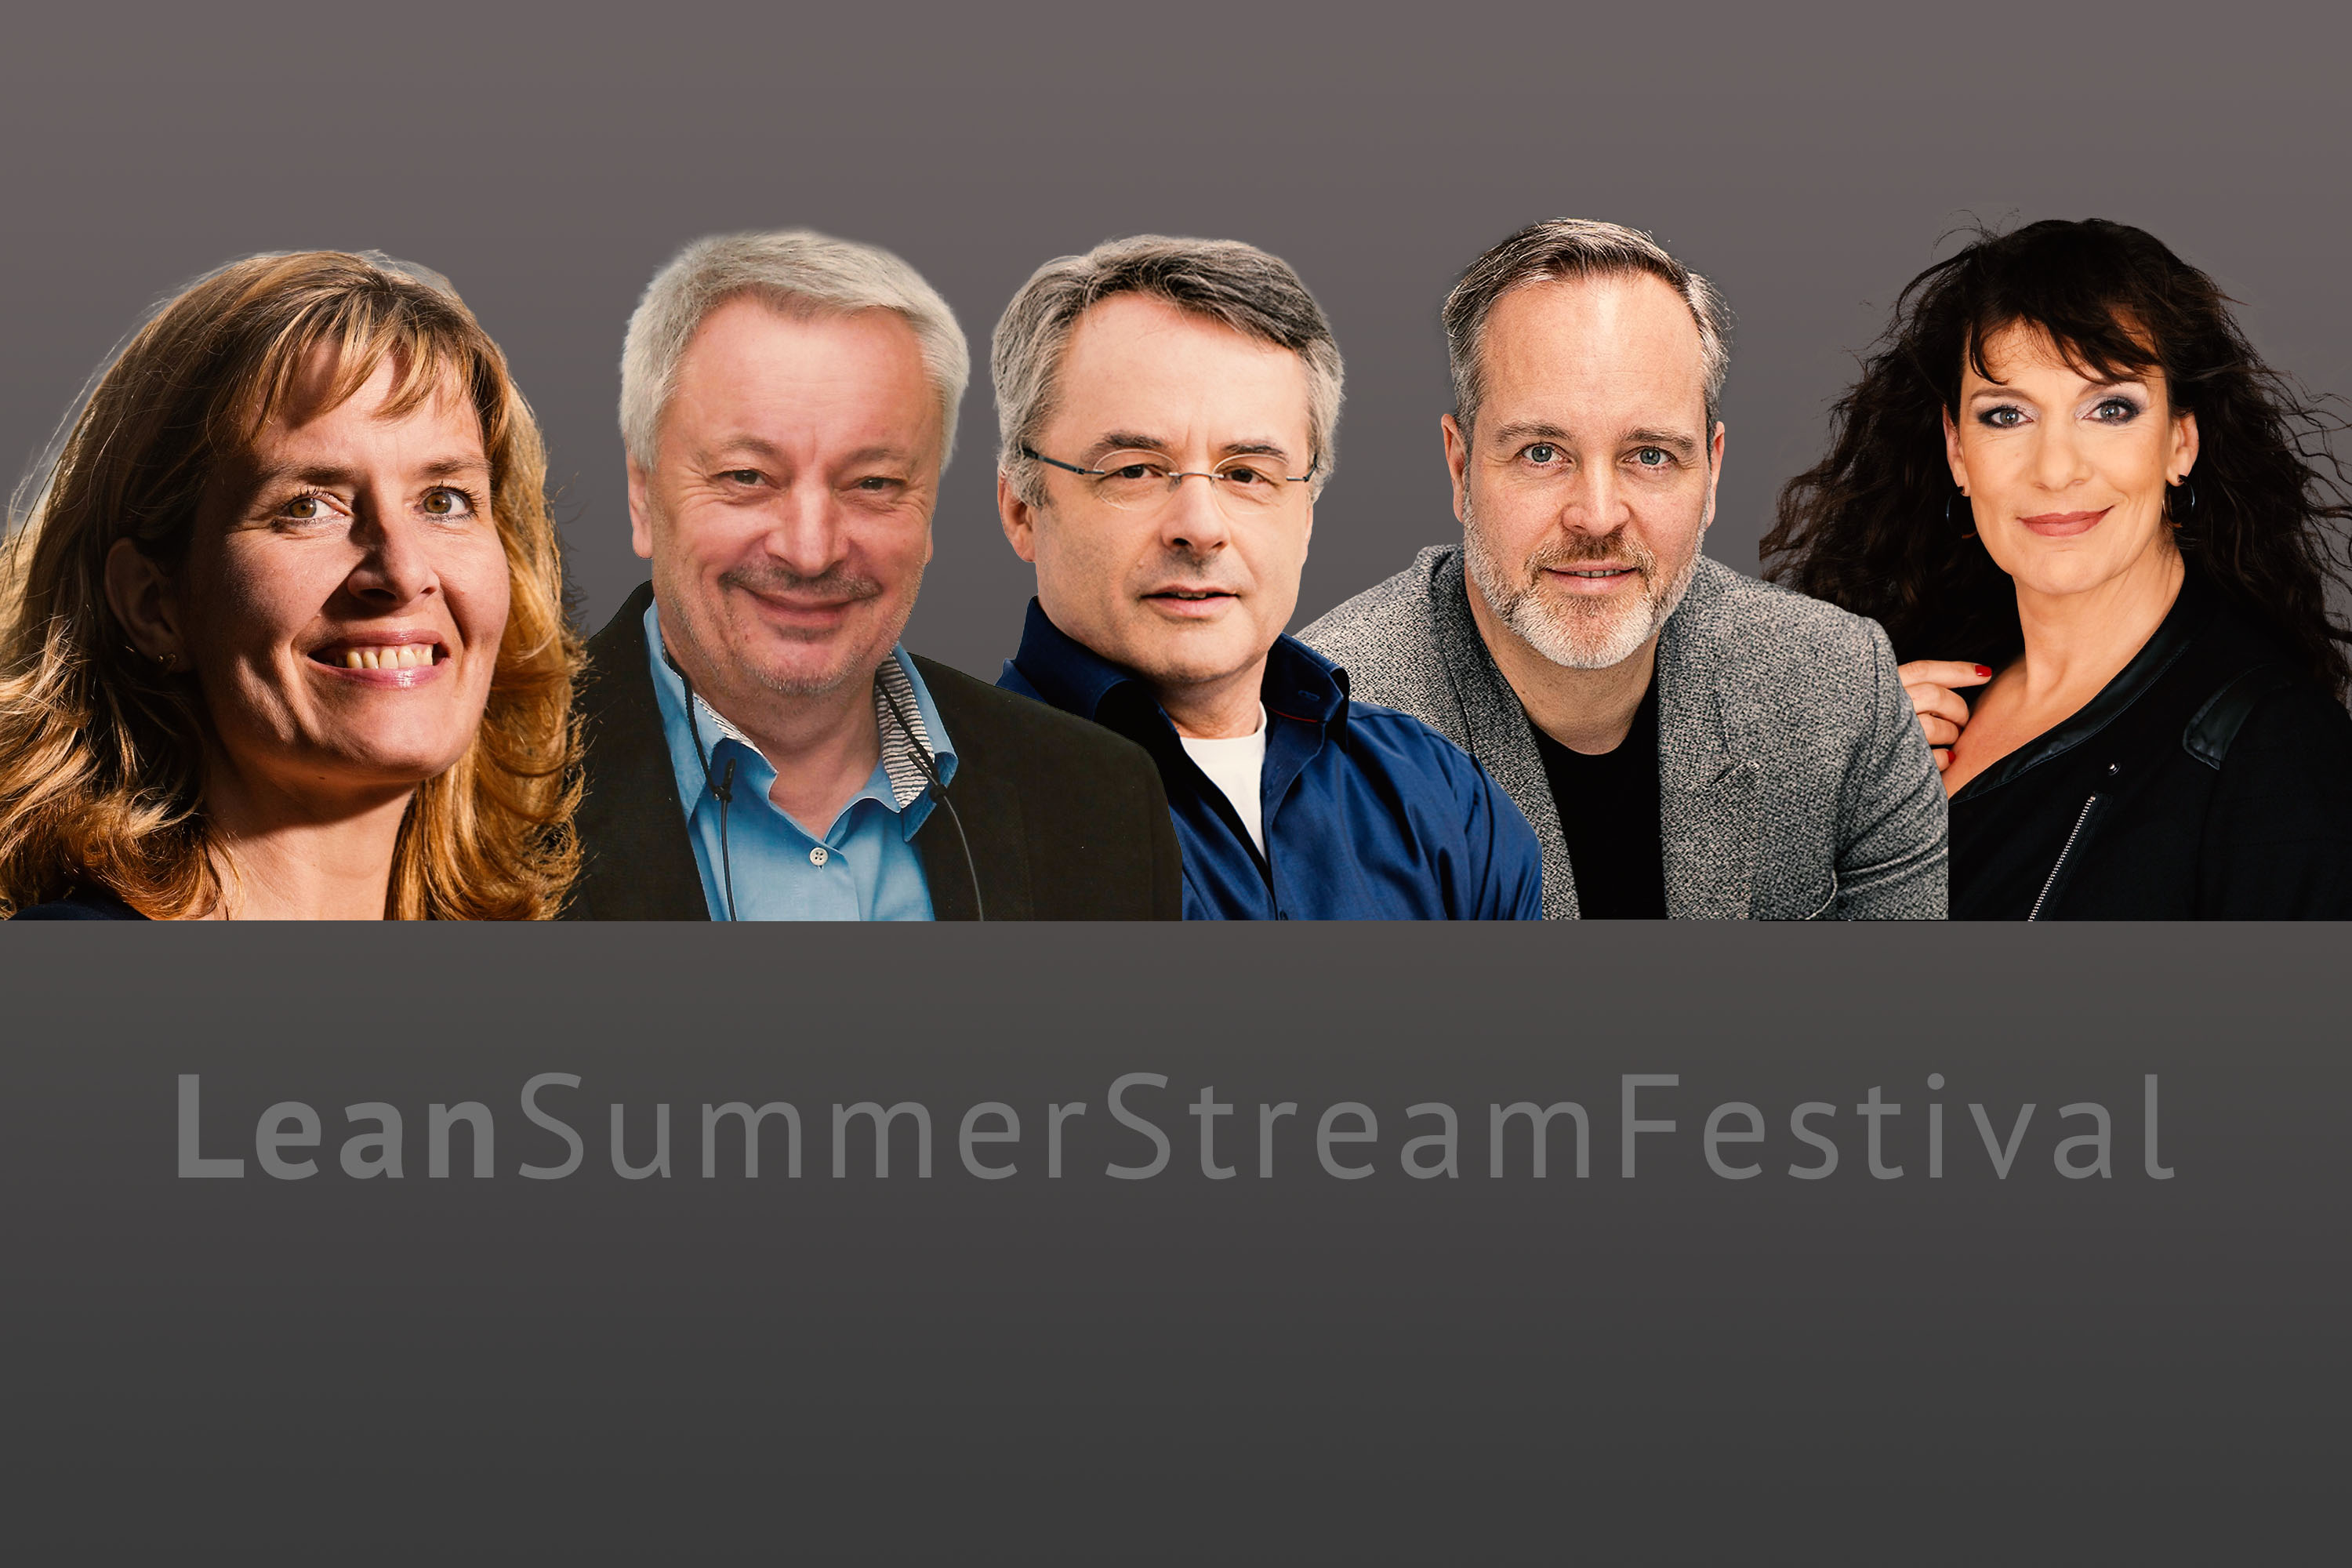 SummerStreamFestival